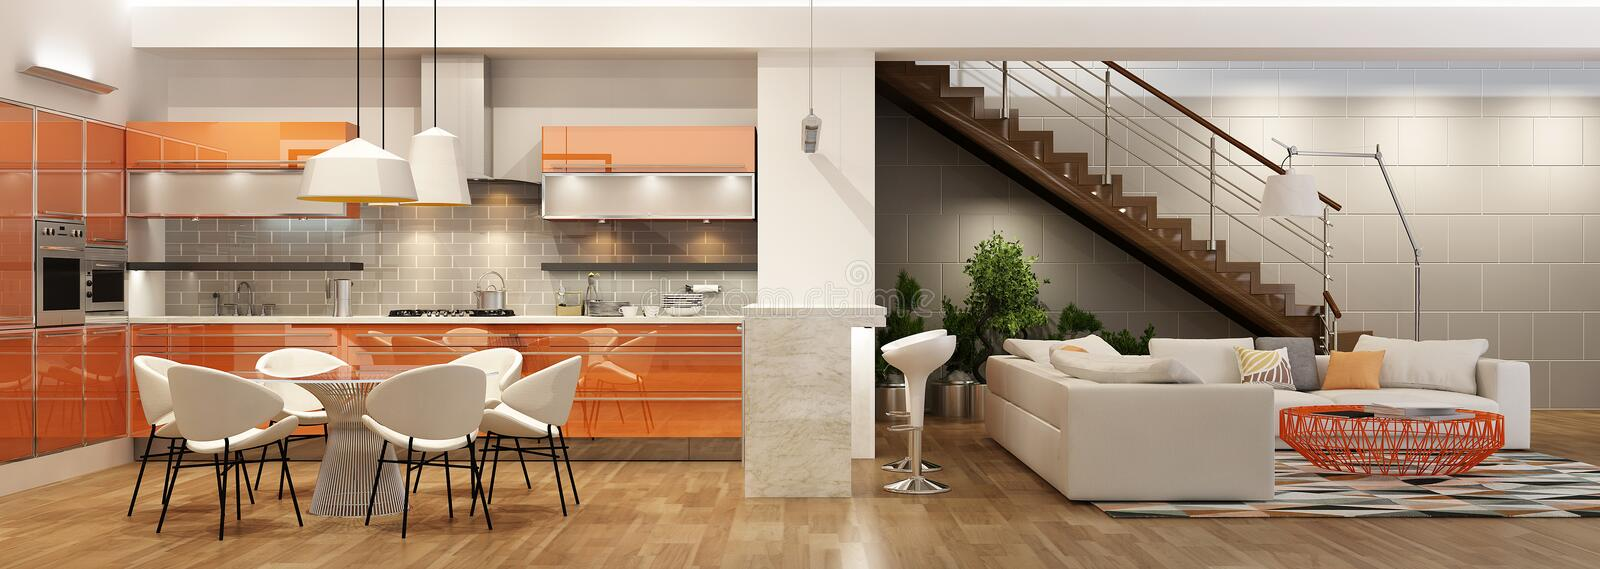 Modern interior of living room with kitchen in house or apartment. 3d rendering royalty free stock photo